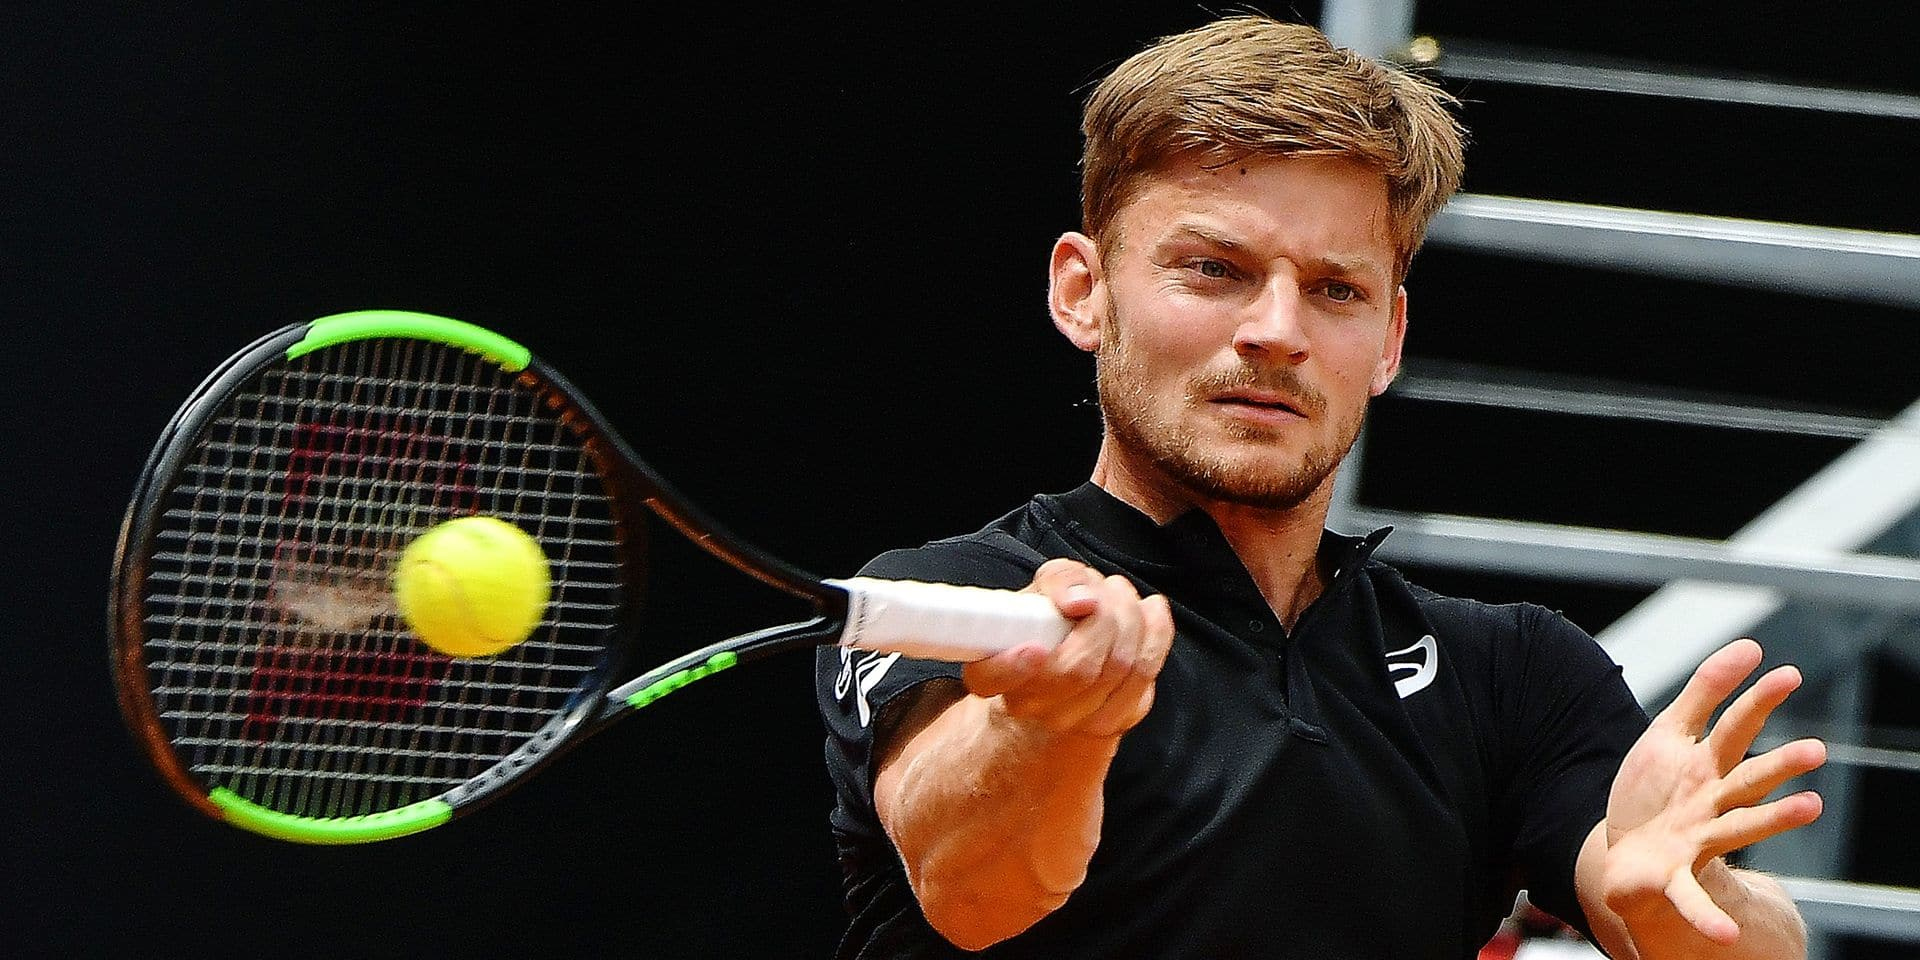 Belgium's David Goffin returns a shot to Switzerland's Stan Wawrinka during their ATP Masters tournament tennis match on May 14, 2019 at the Foro Italico in Rome. (Photo by Andreas SOLARO / AFP)